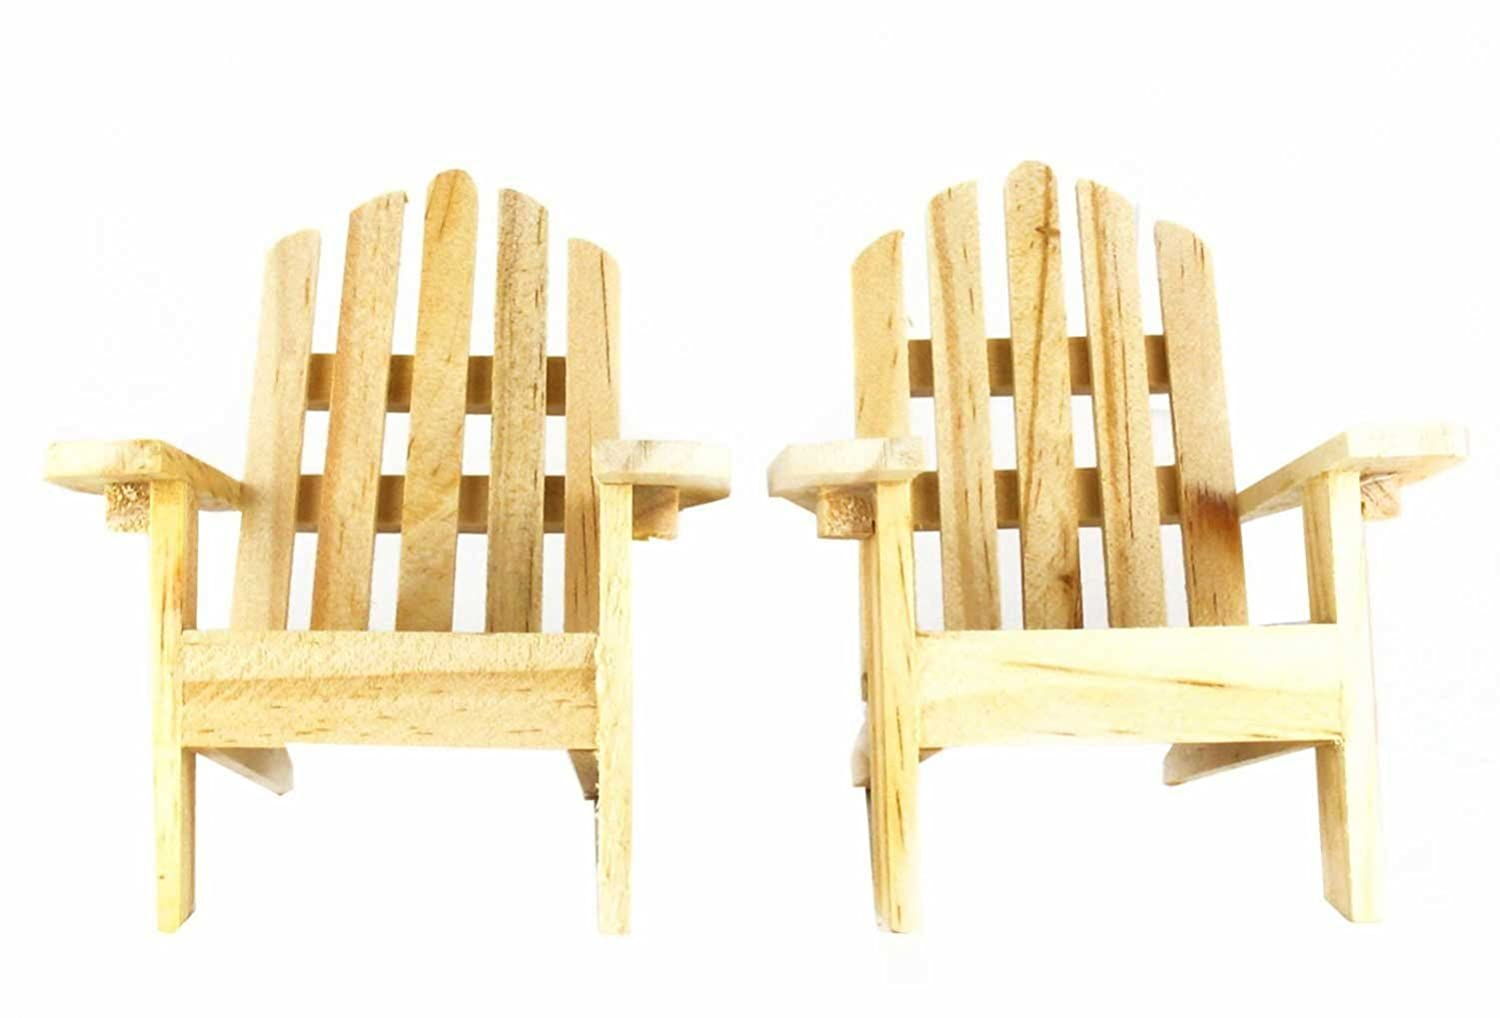 Superbe Amazon.com : Mini Decorative Adirondack Style Plain Wood Chairs (Set Of 2)  : Wedding Cake Toppers : Garden U0026 Outdoor